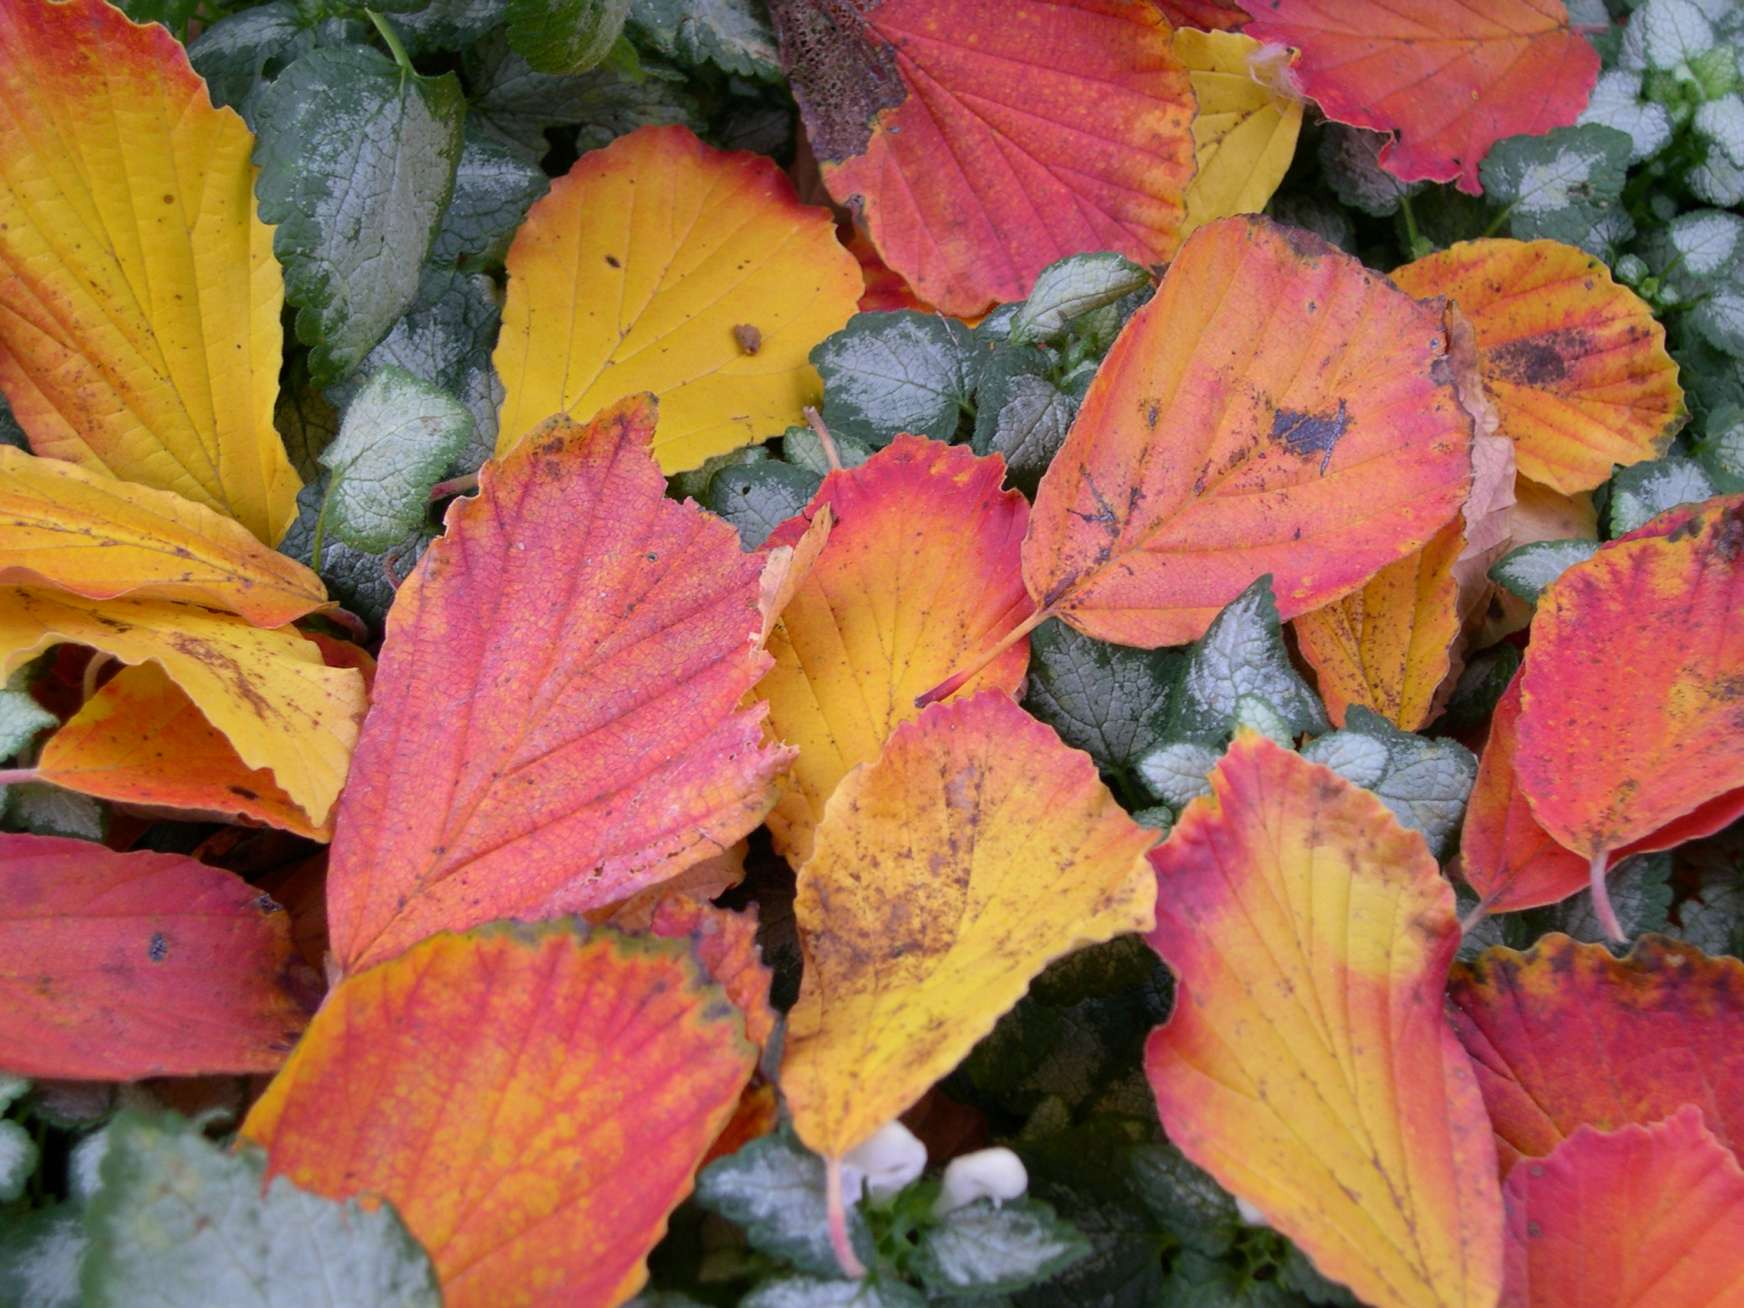 I like Autumn for planting….that makes me the Fall guy.